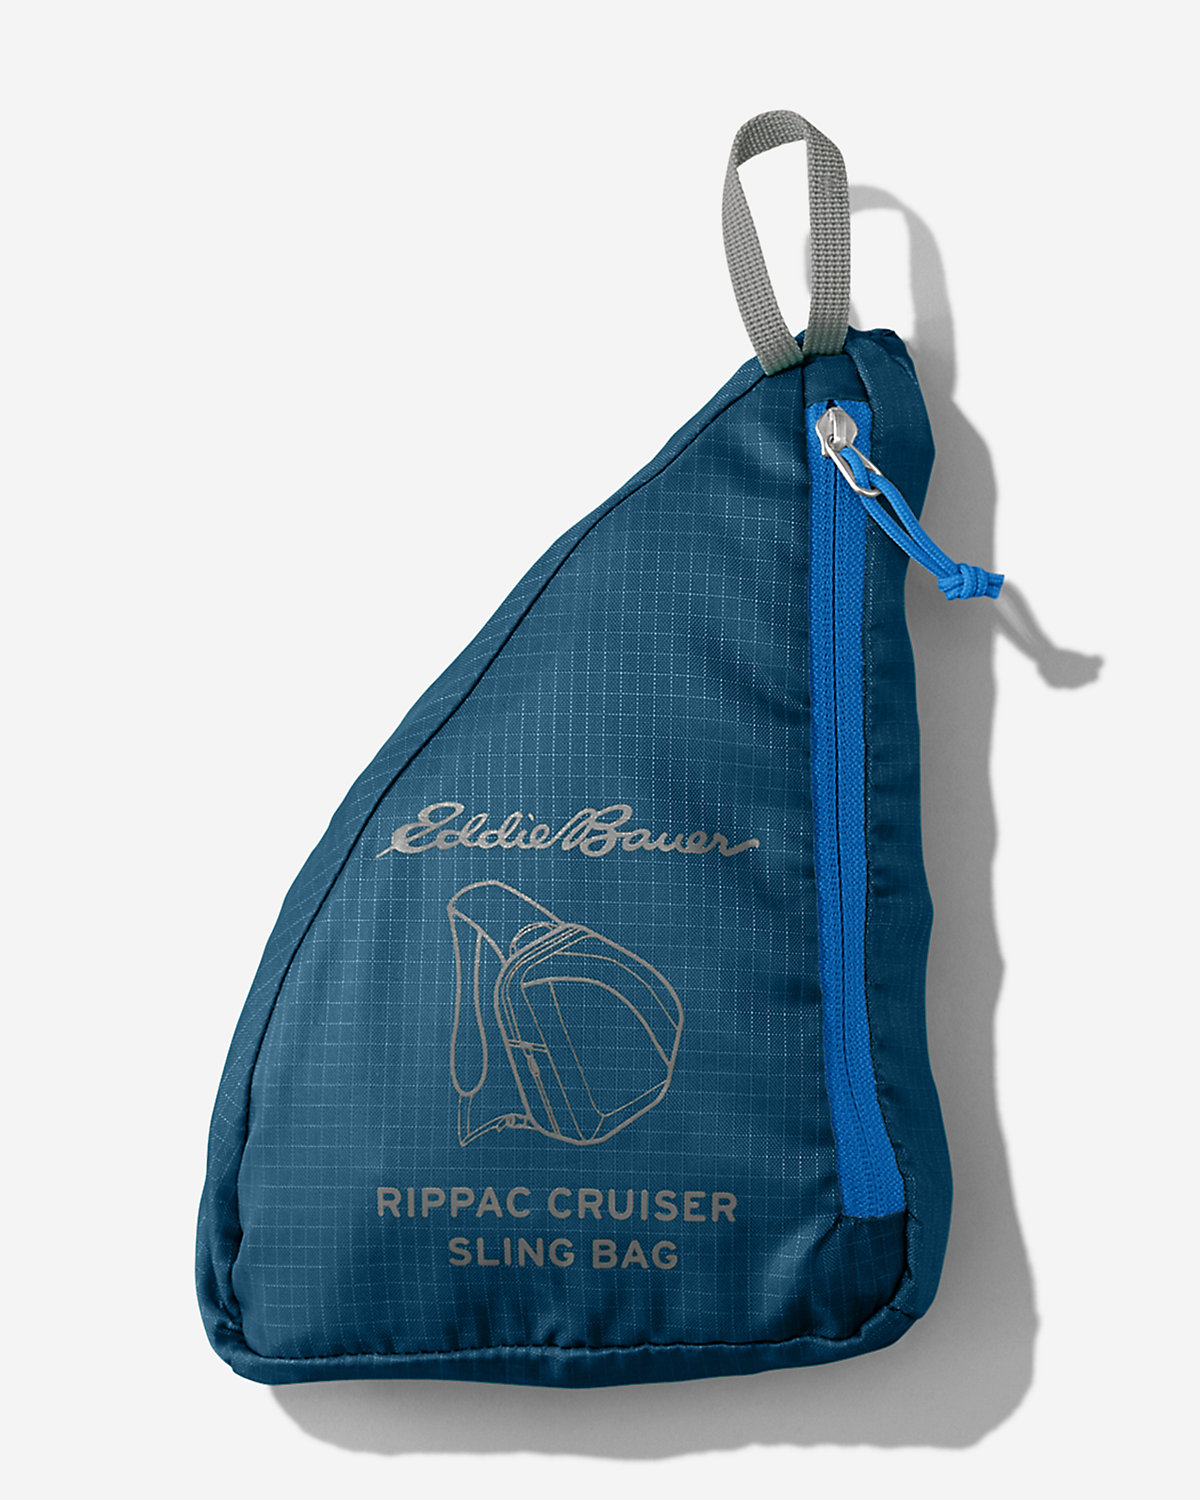 Eddie Bauer Stowaway Packable Sling Bag